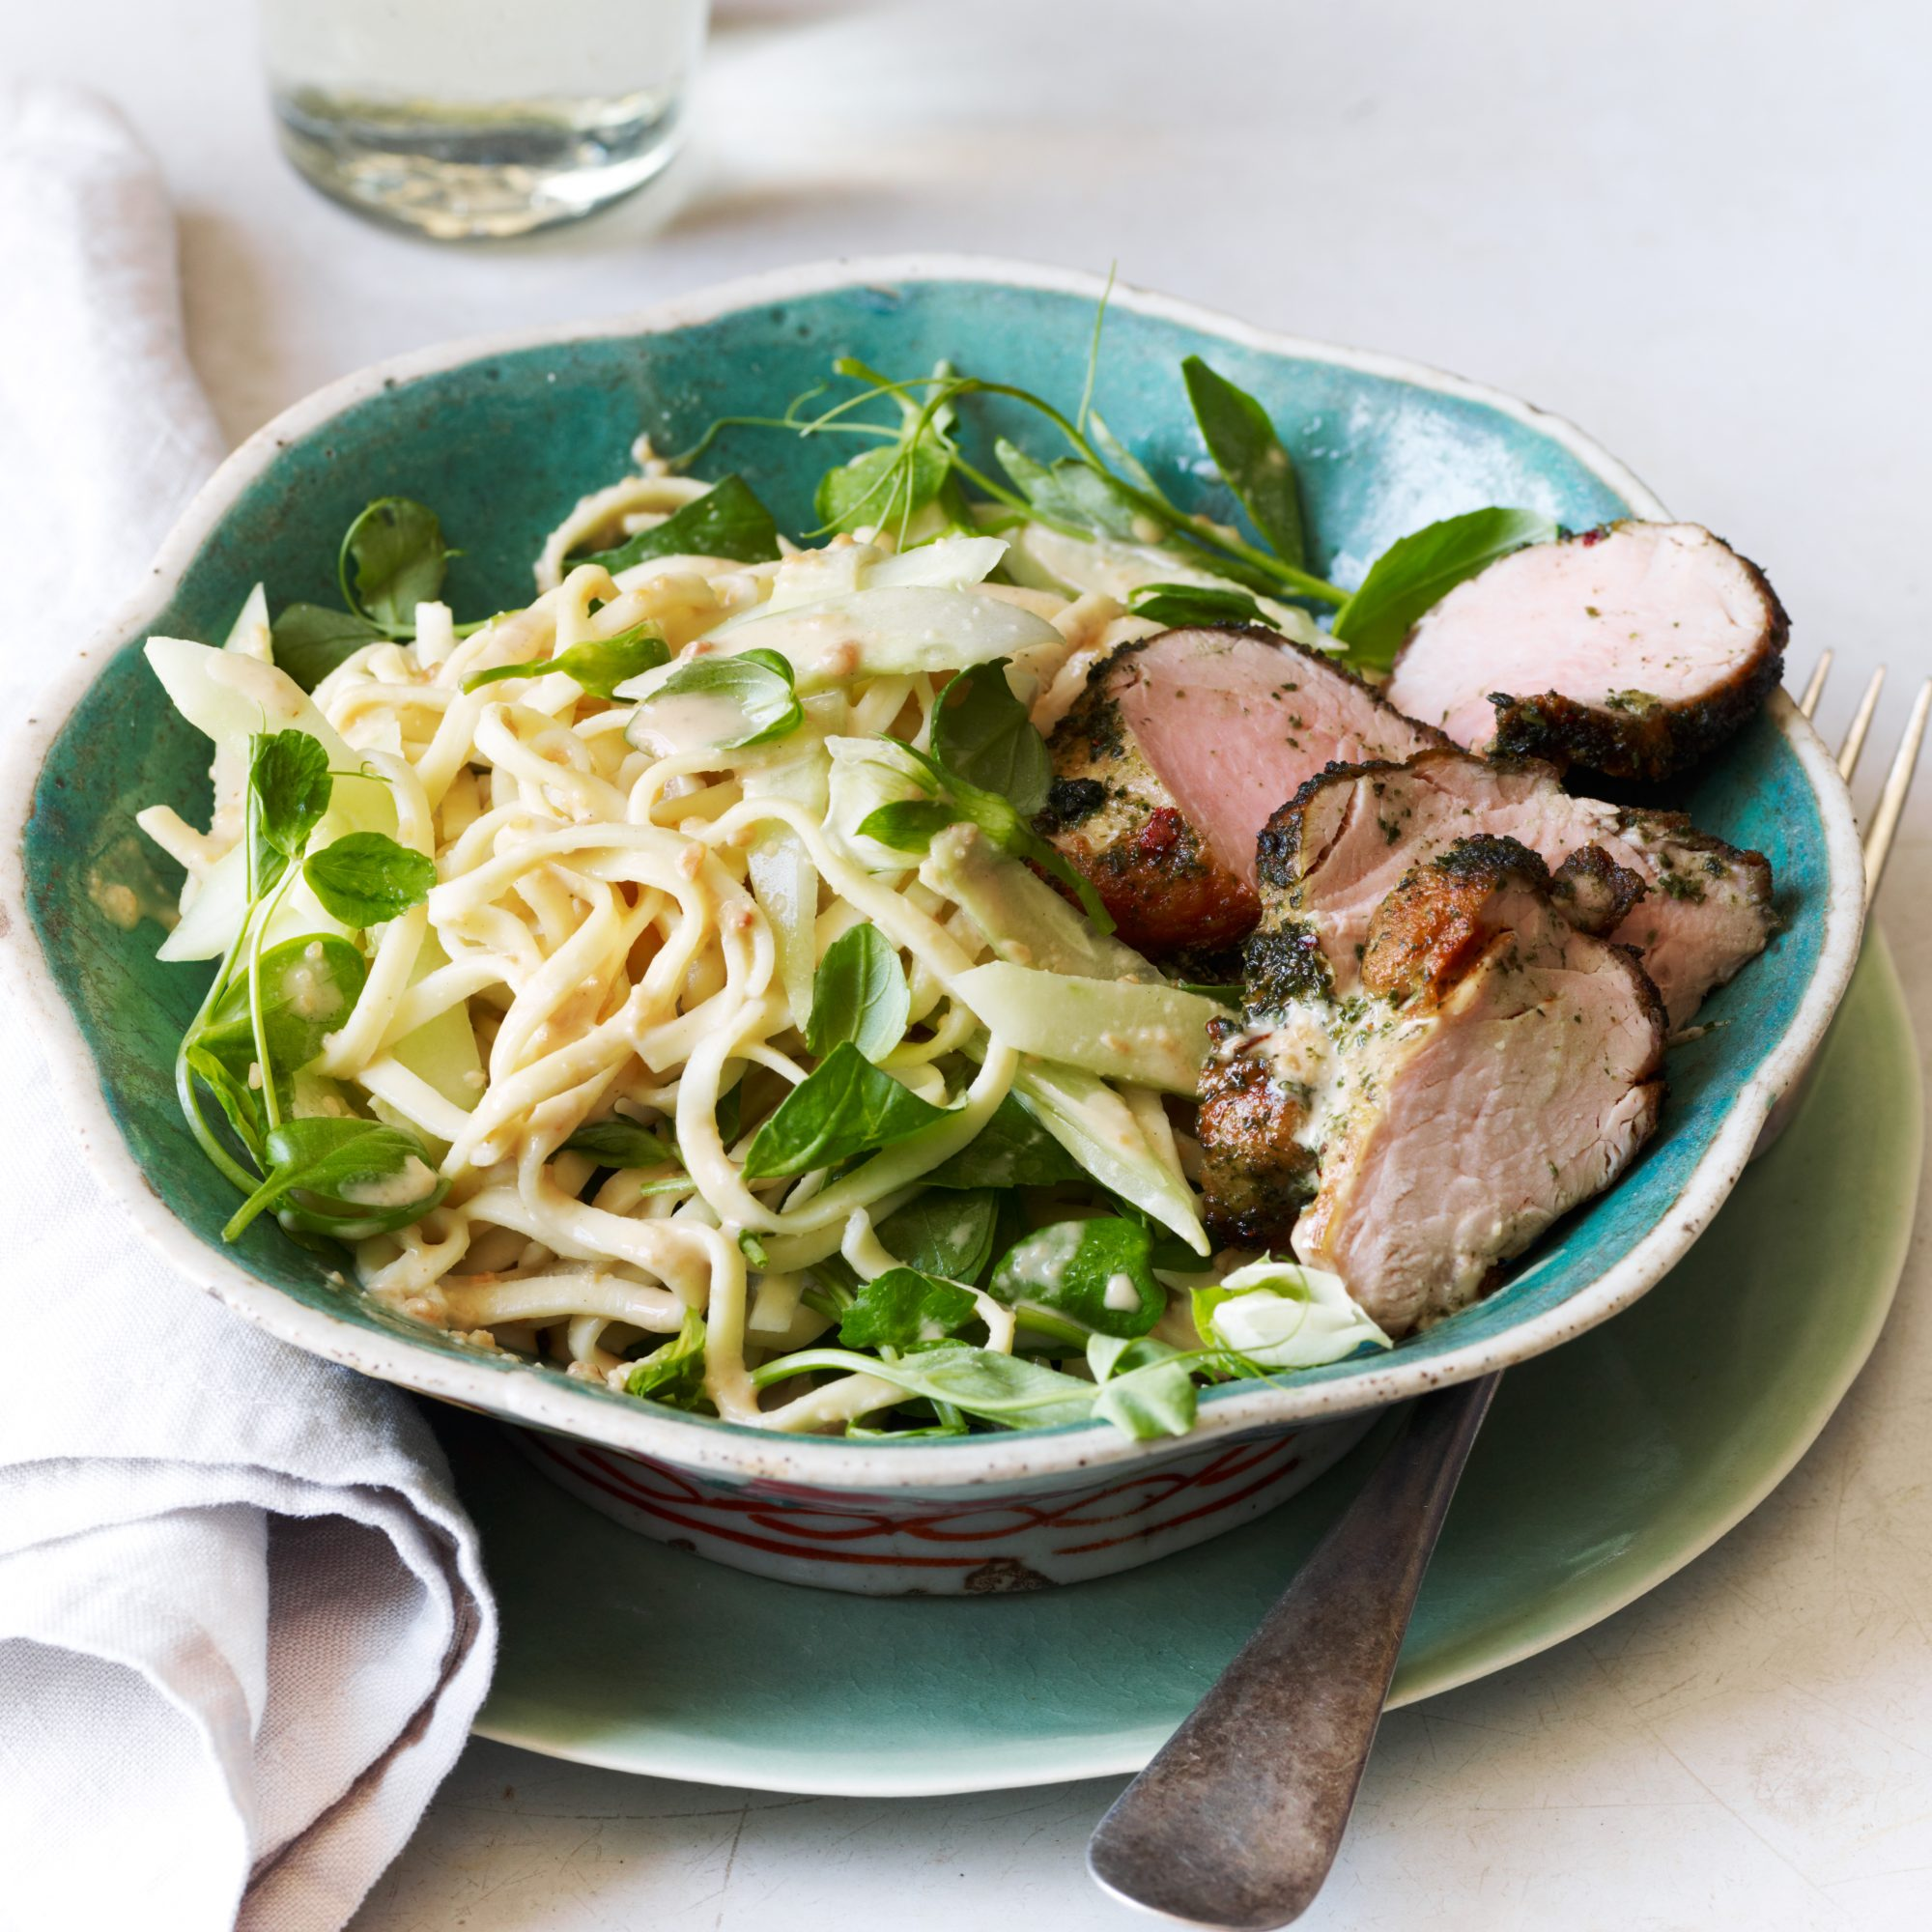 200x250-201207-r-peanut-noodle-salad-with-cucumber-and-roast-pork.jpg